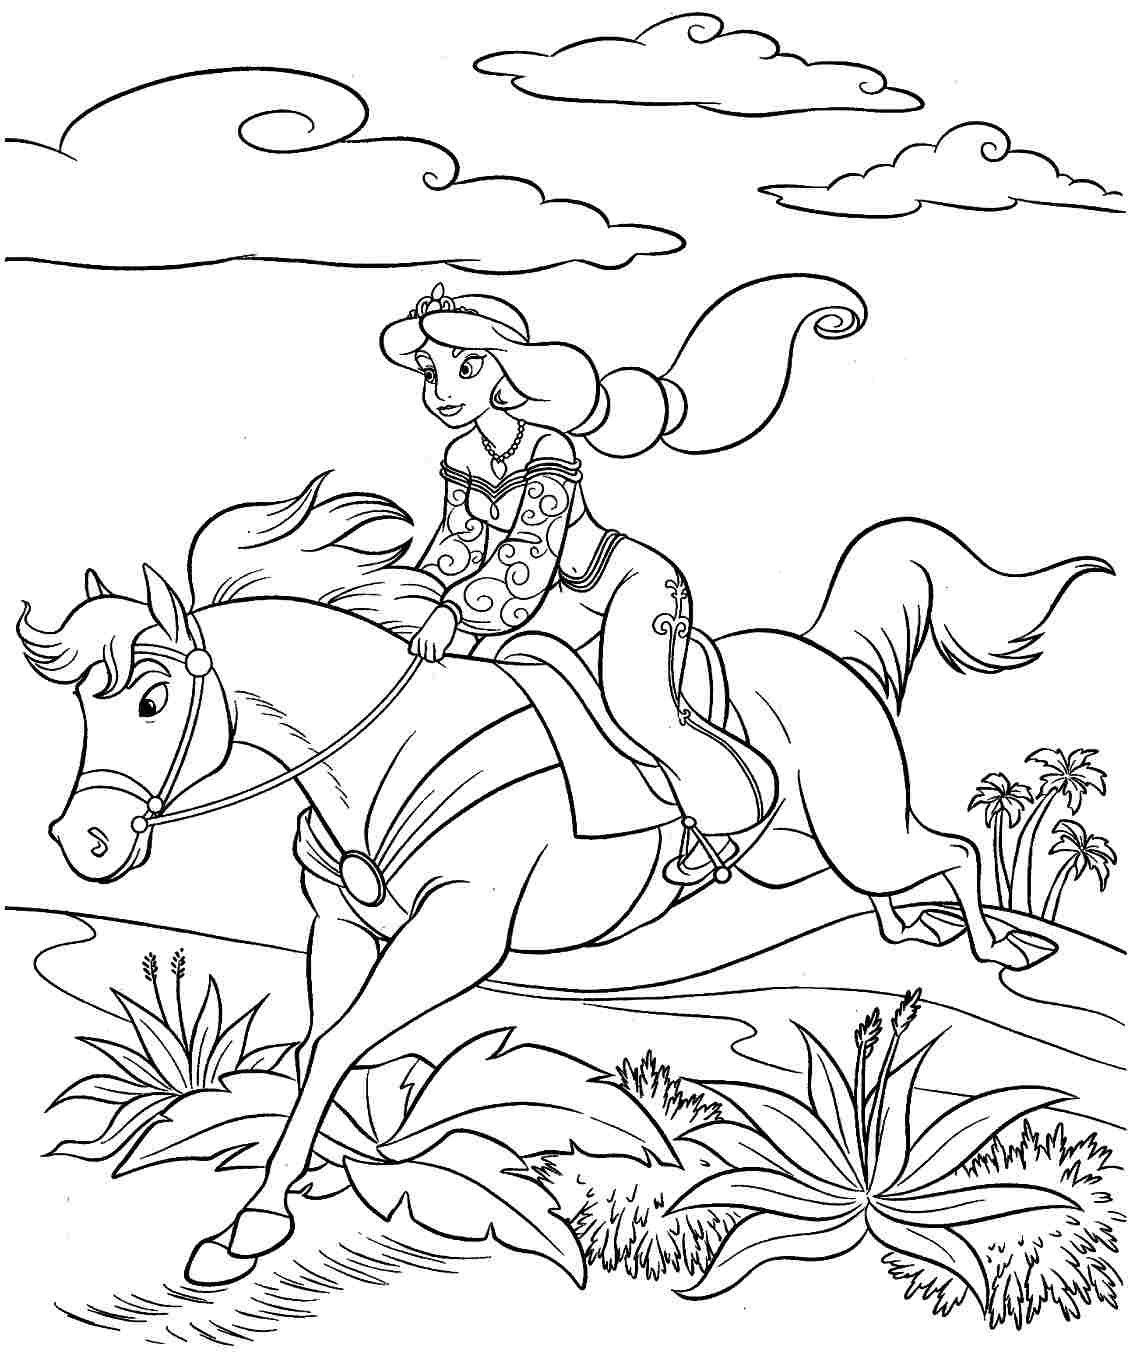 princess riding a horse coloring pages princess riding a horse coloring pages from the thousand riding a coloring princess pages horse